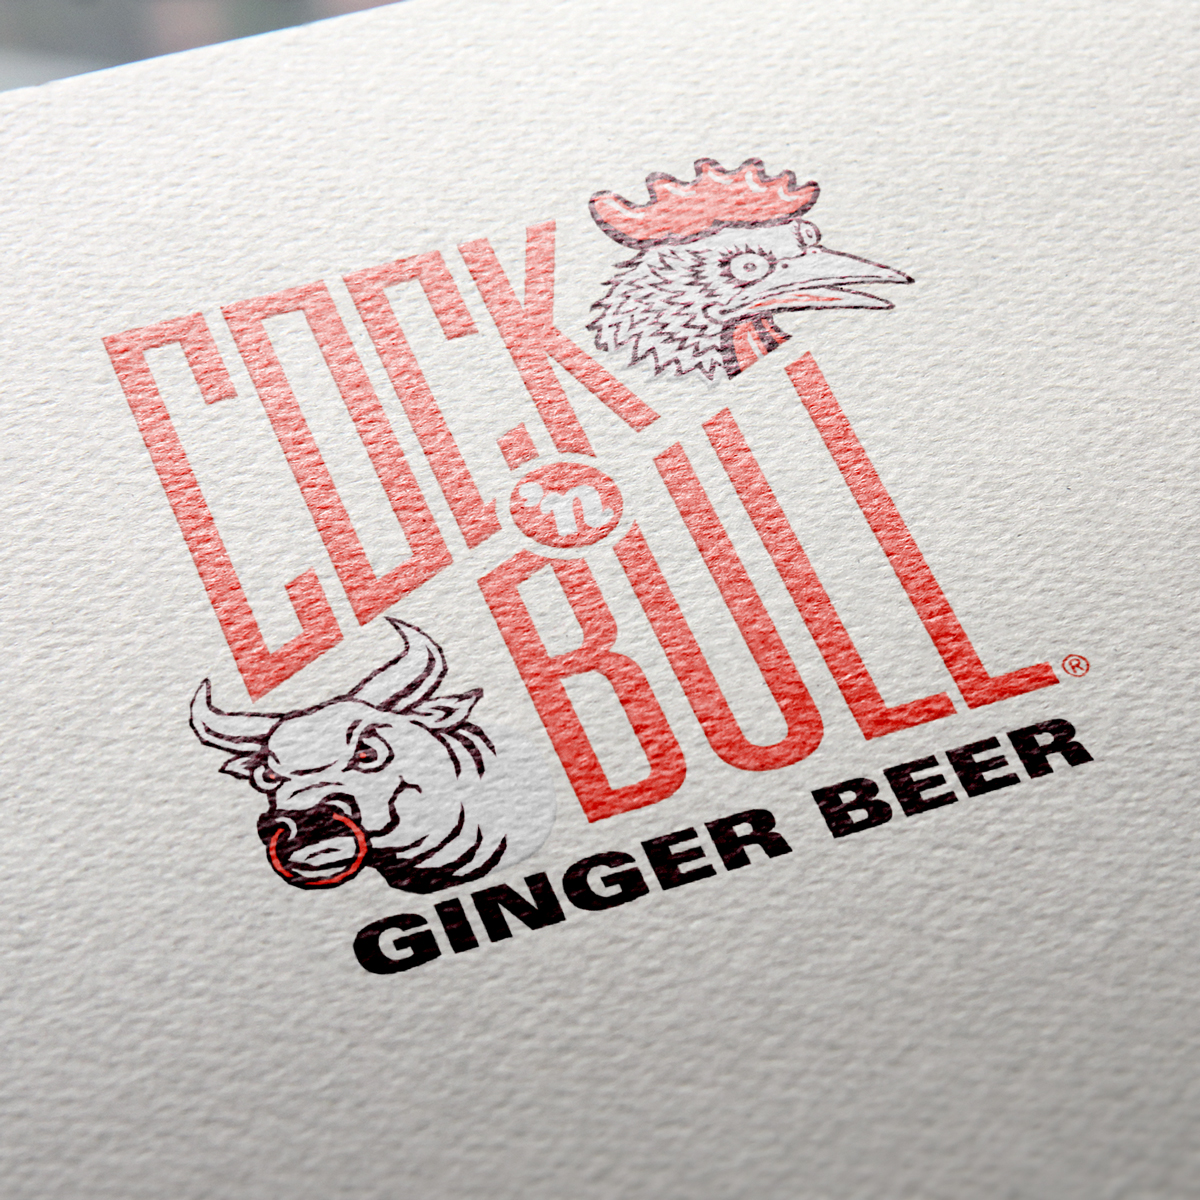 The new Cock 'n Bull logo design